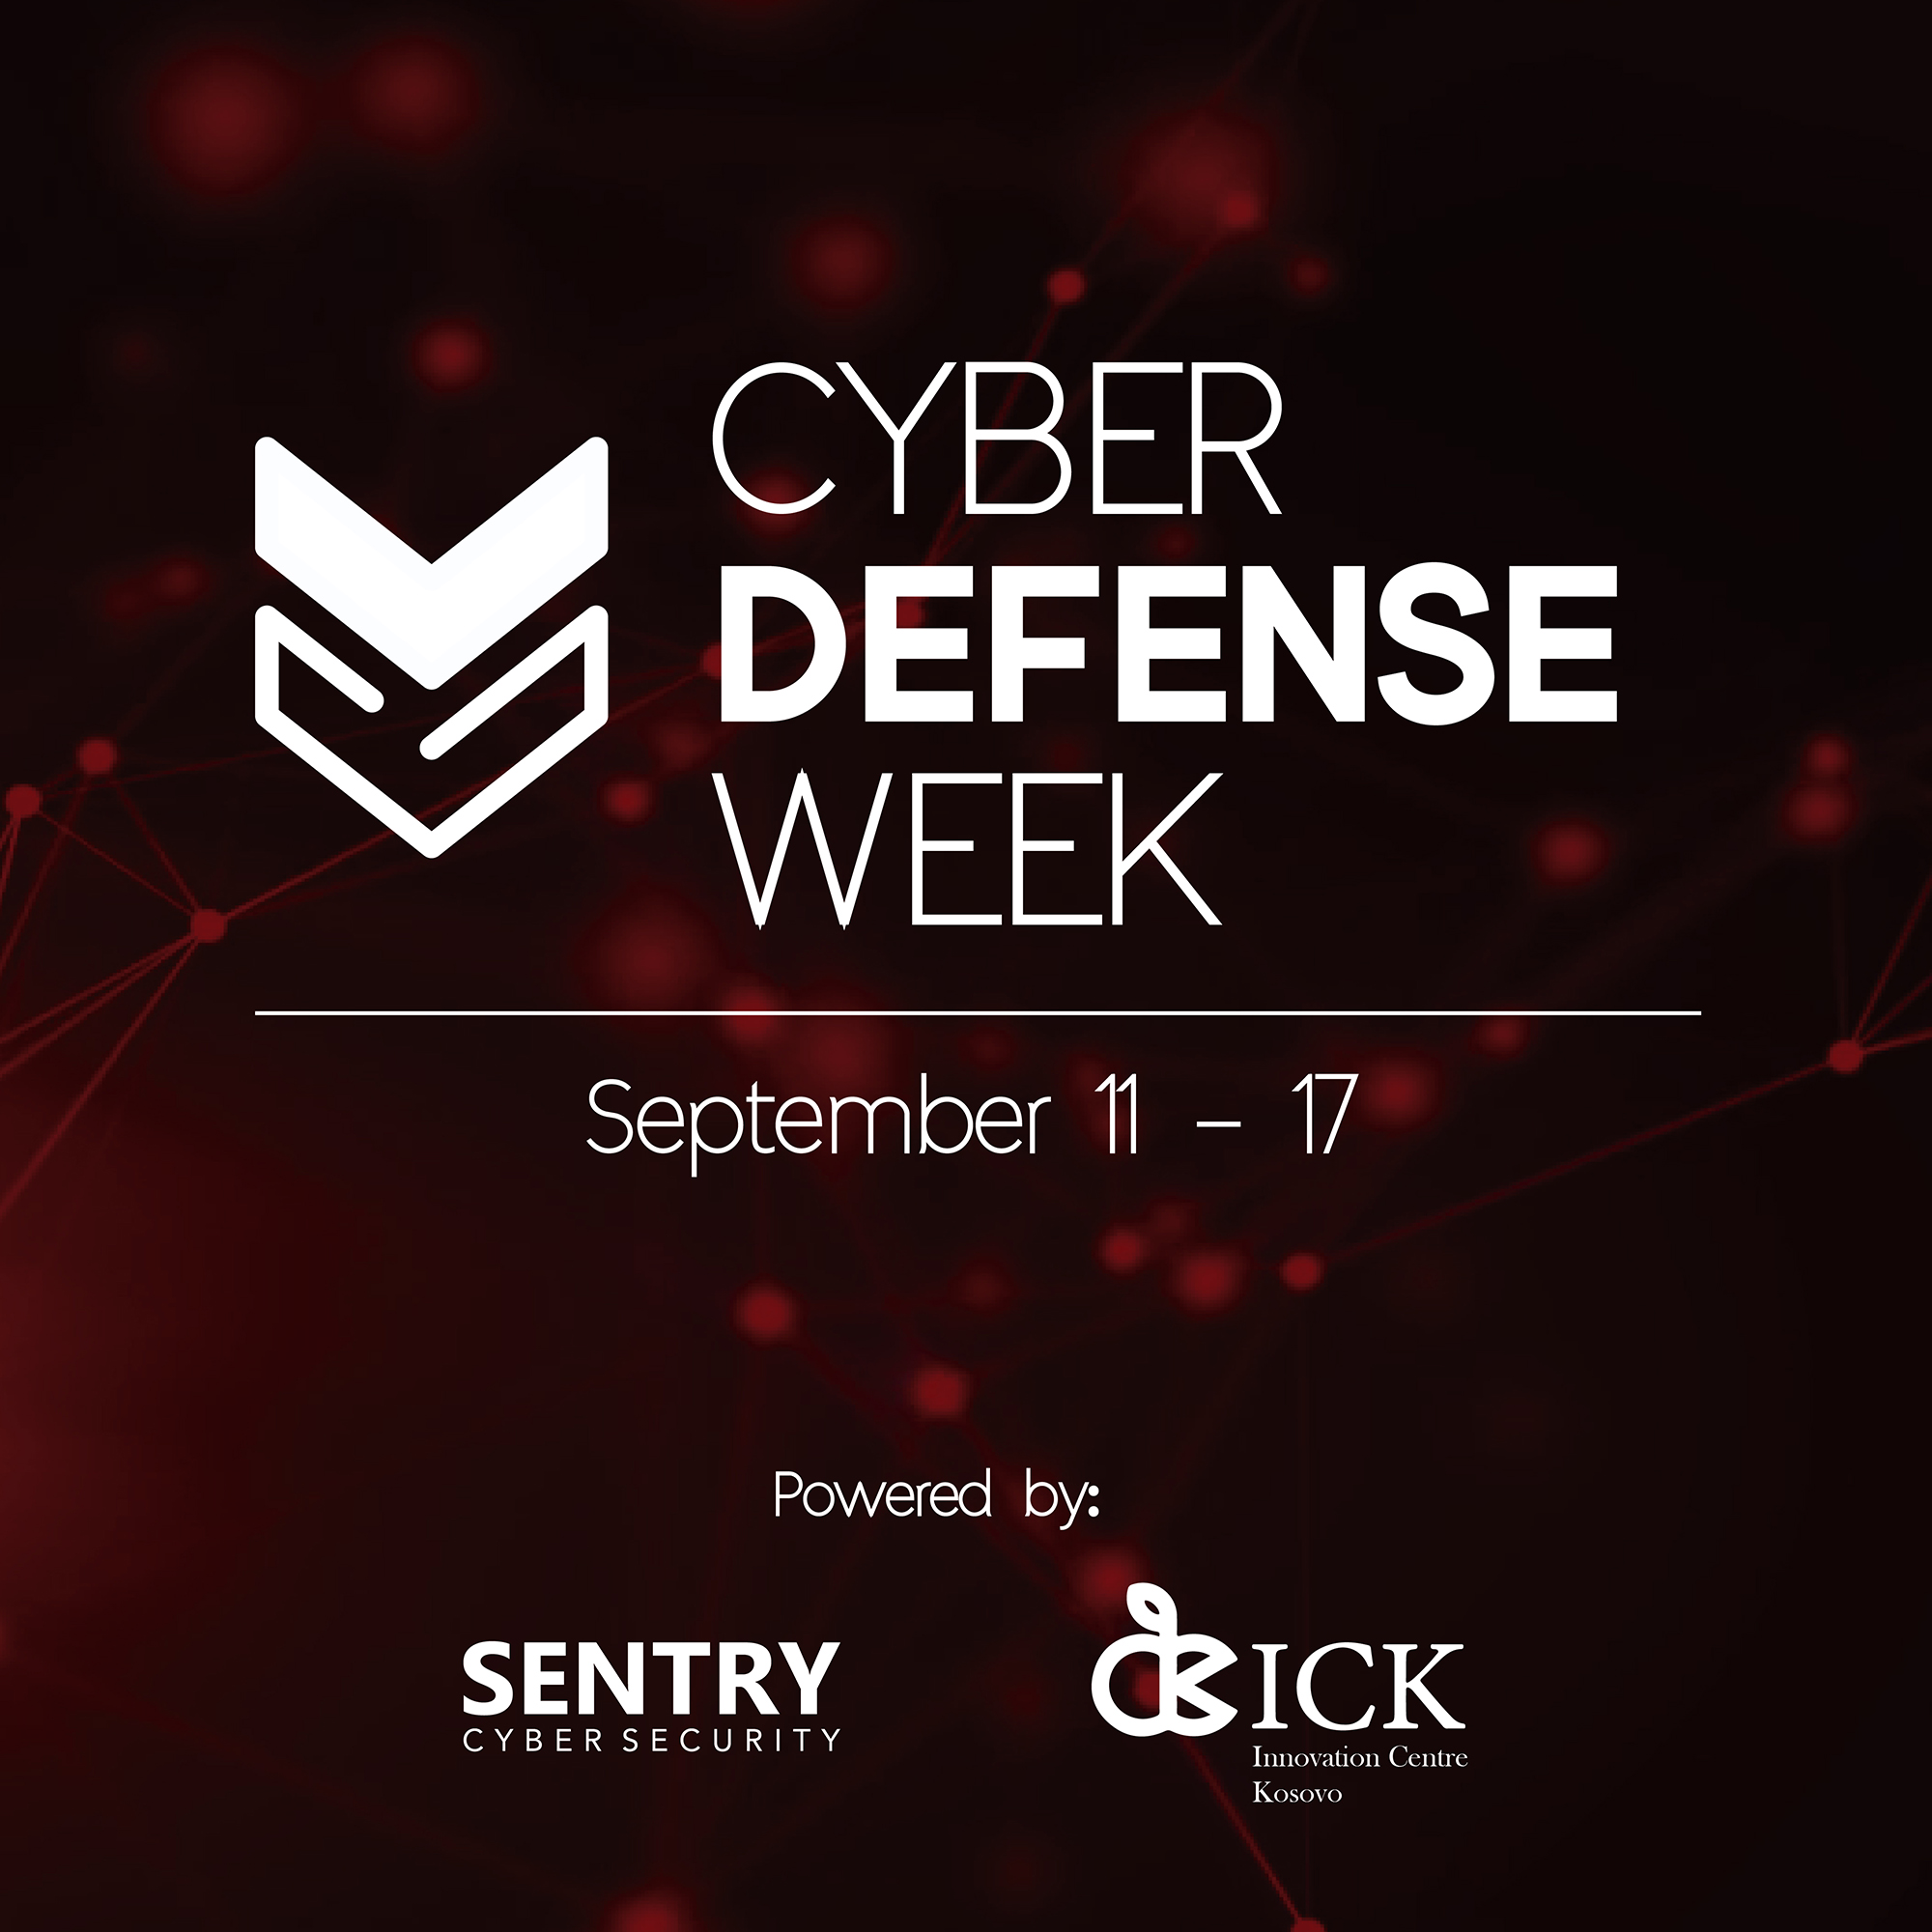 Cyber Defense Week. Yes, the entire week.